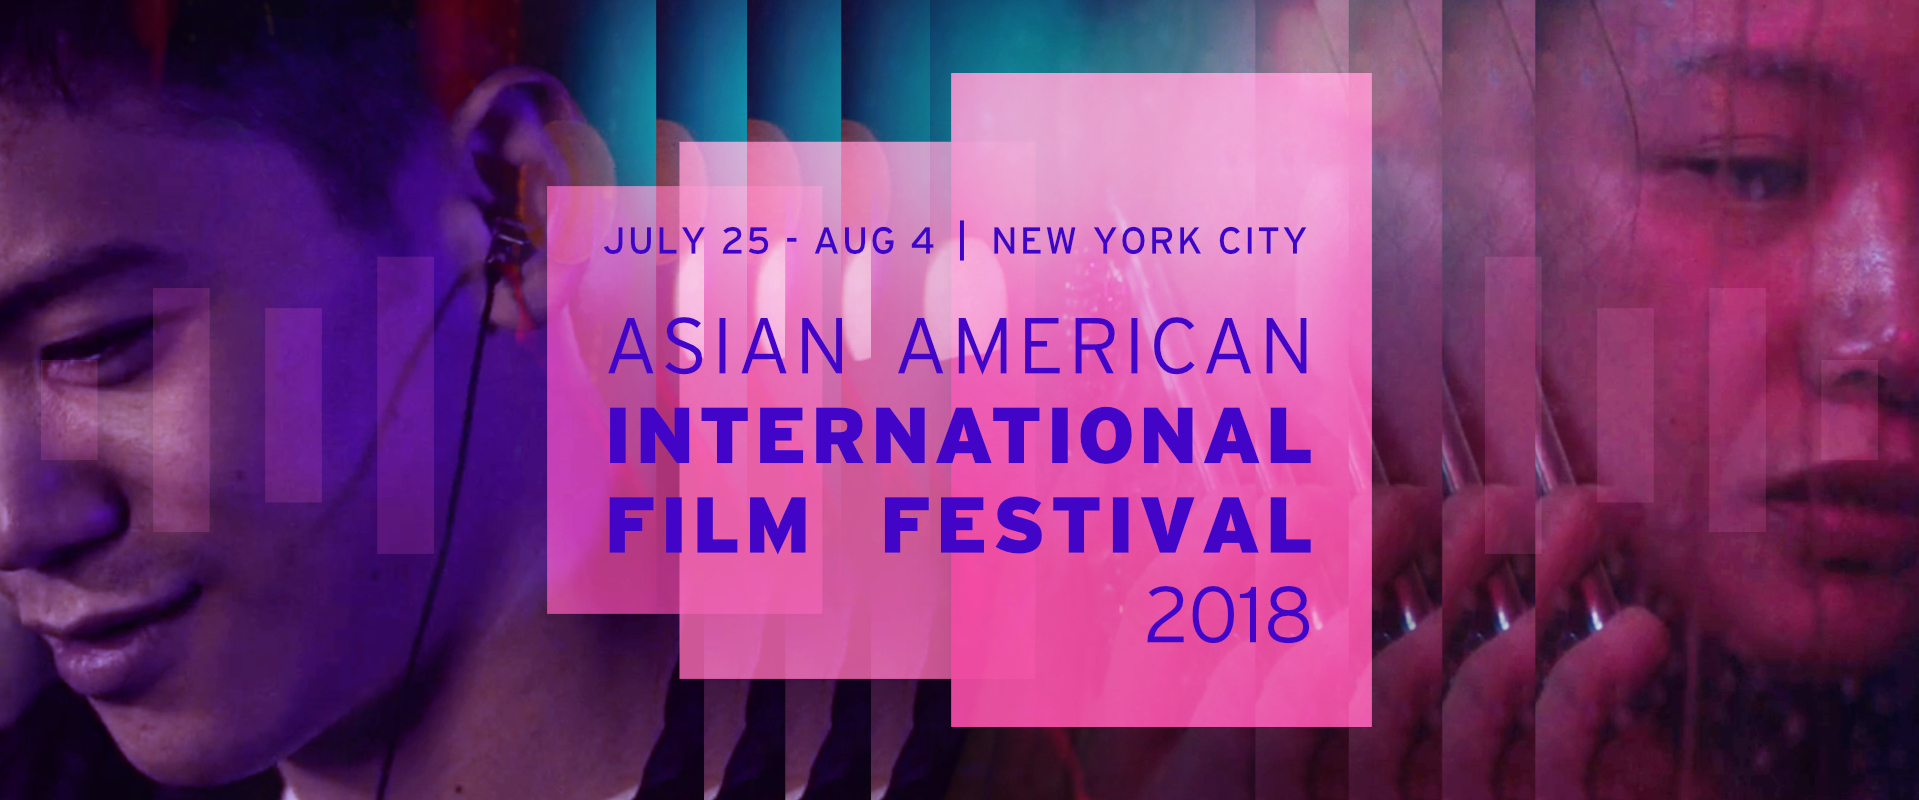 2018 Asian American International Film Festival